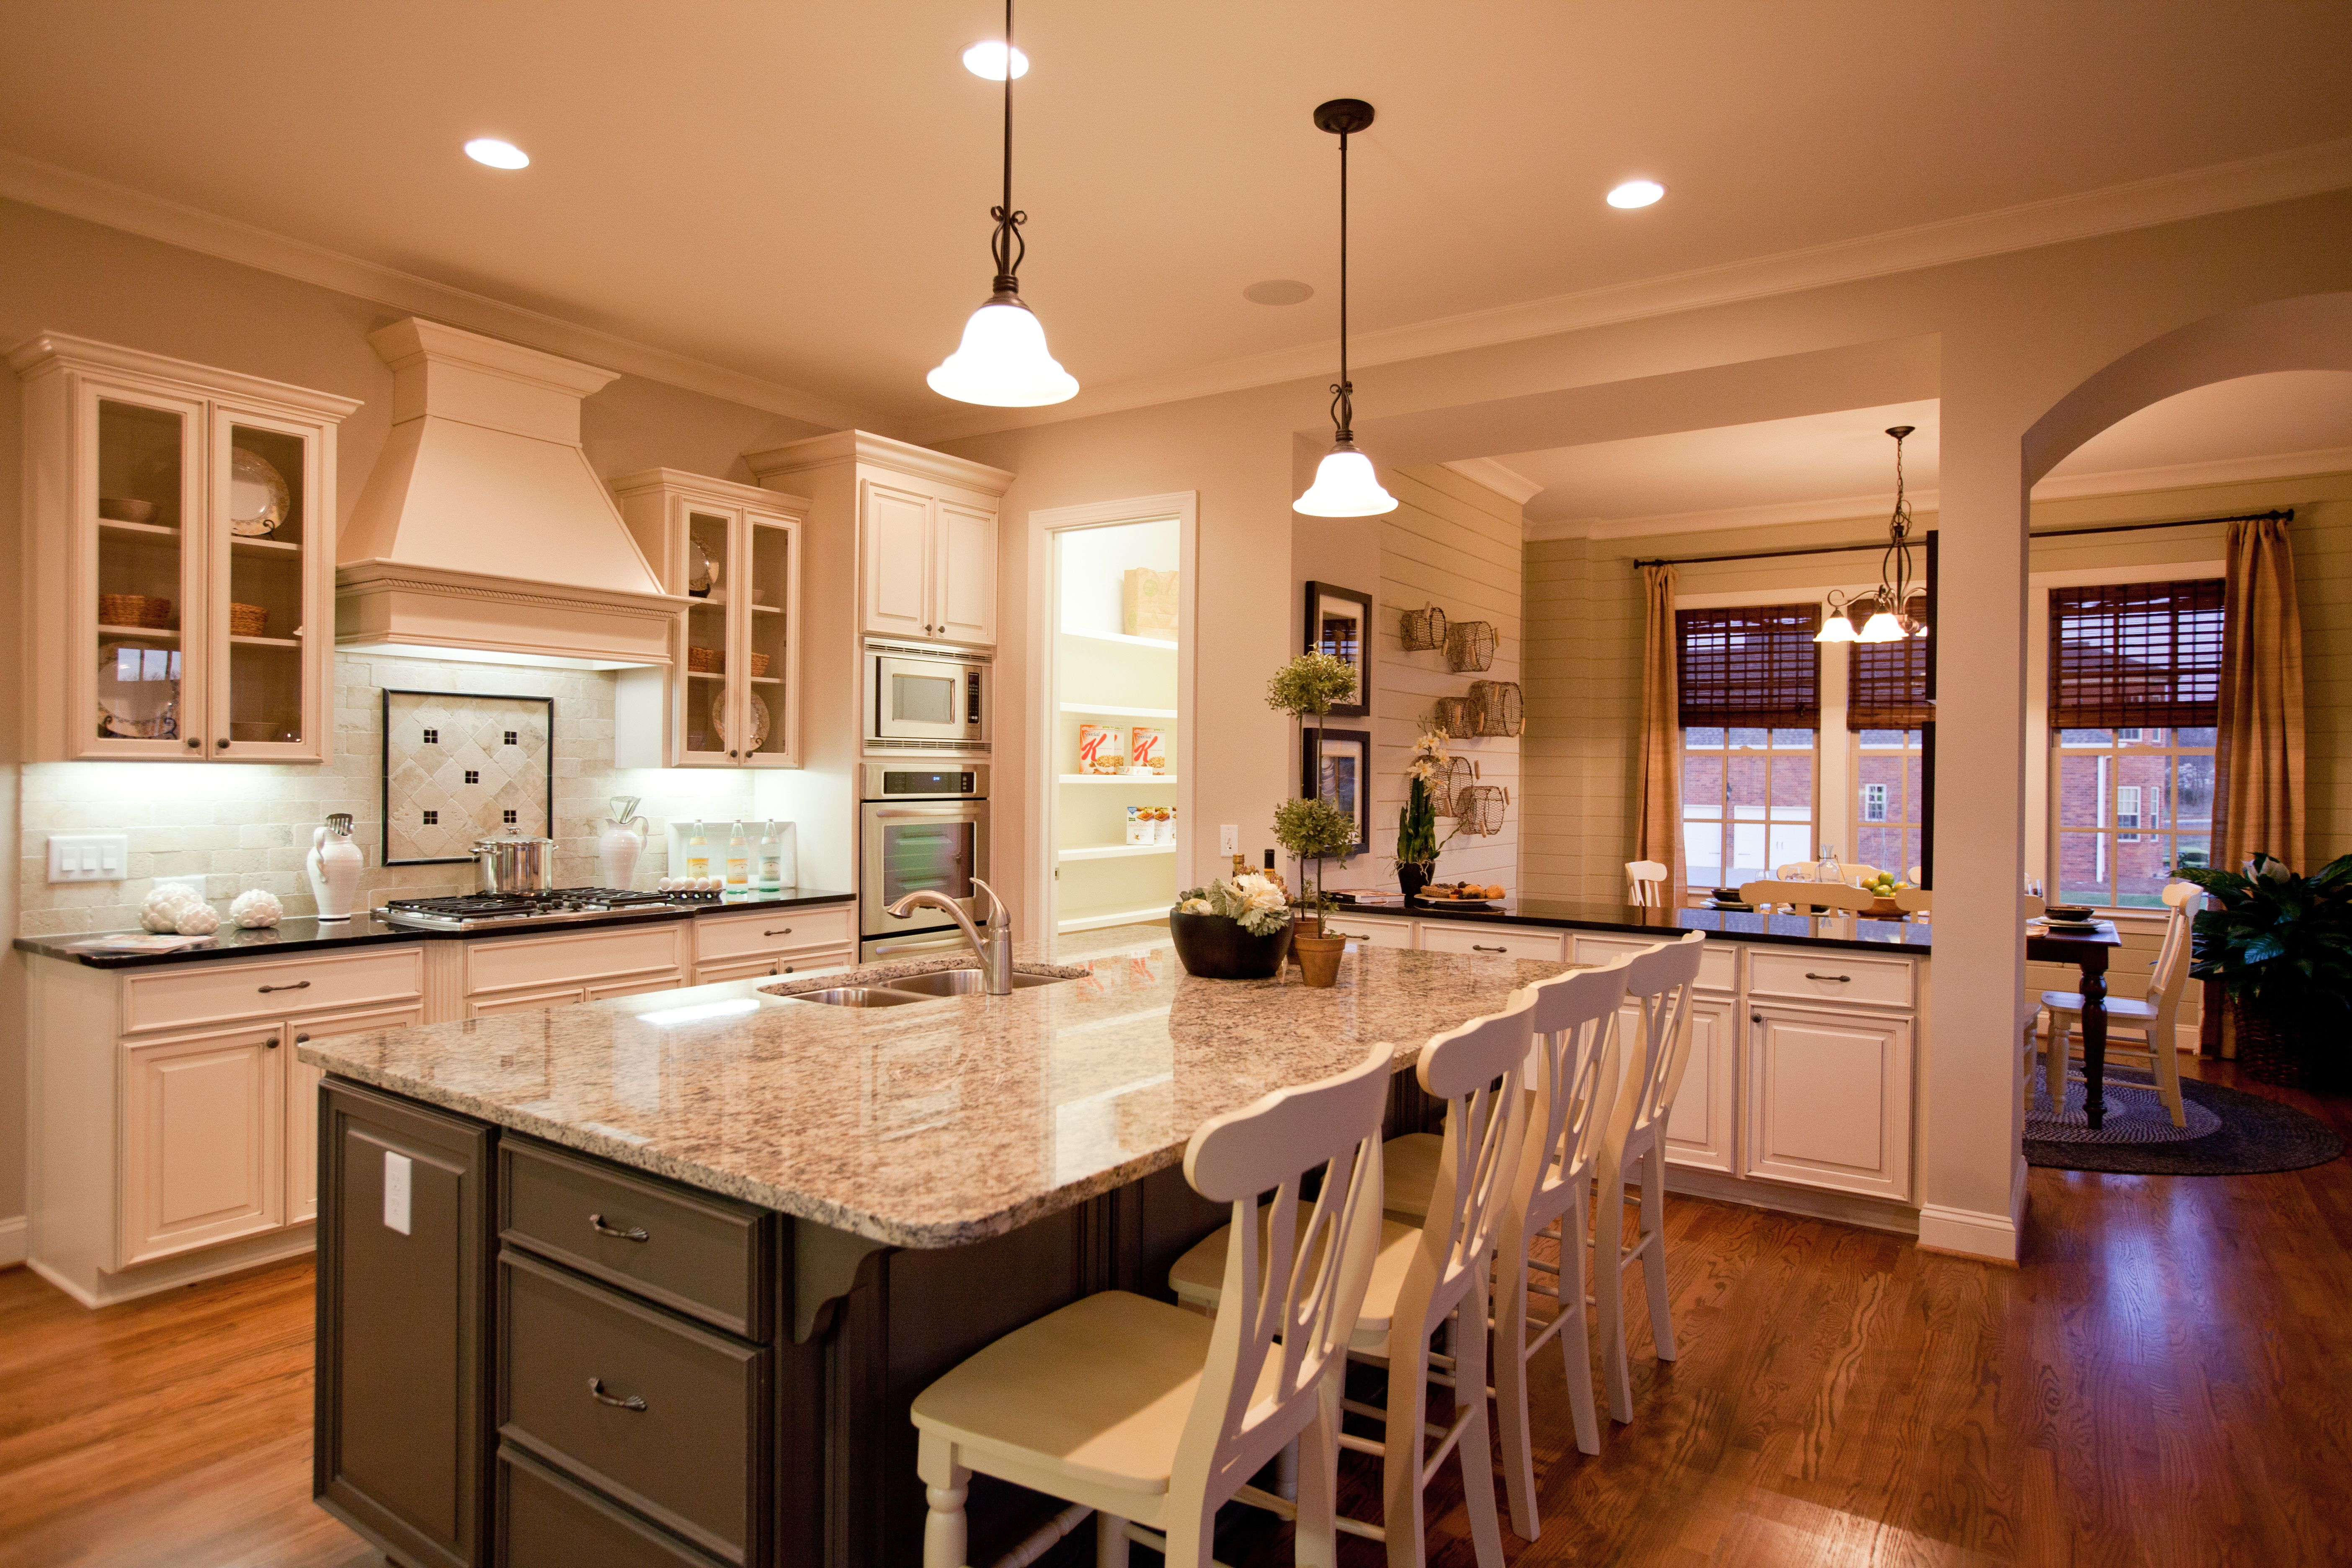 25 Inspirational House Kitchen Models - HOME DECOR VIRAL NEWS on Model Kitchen Picture  id=54936